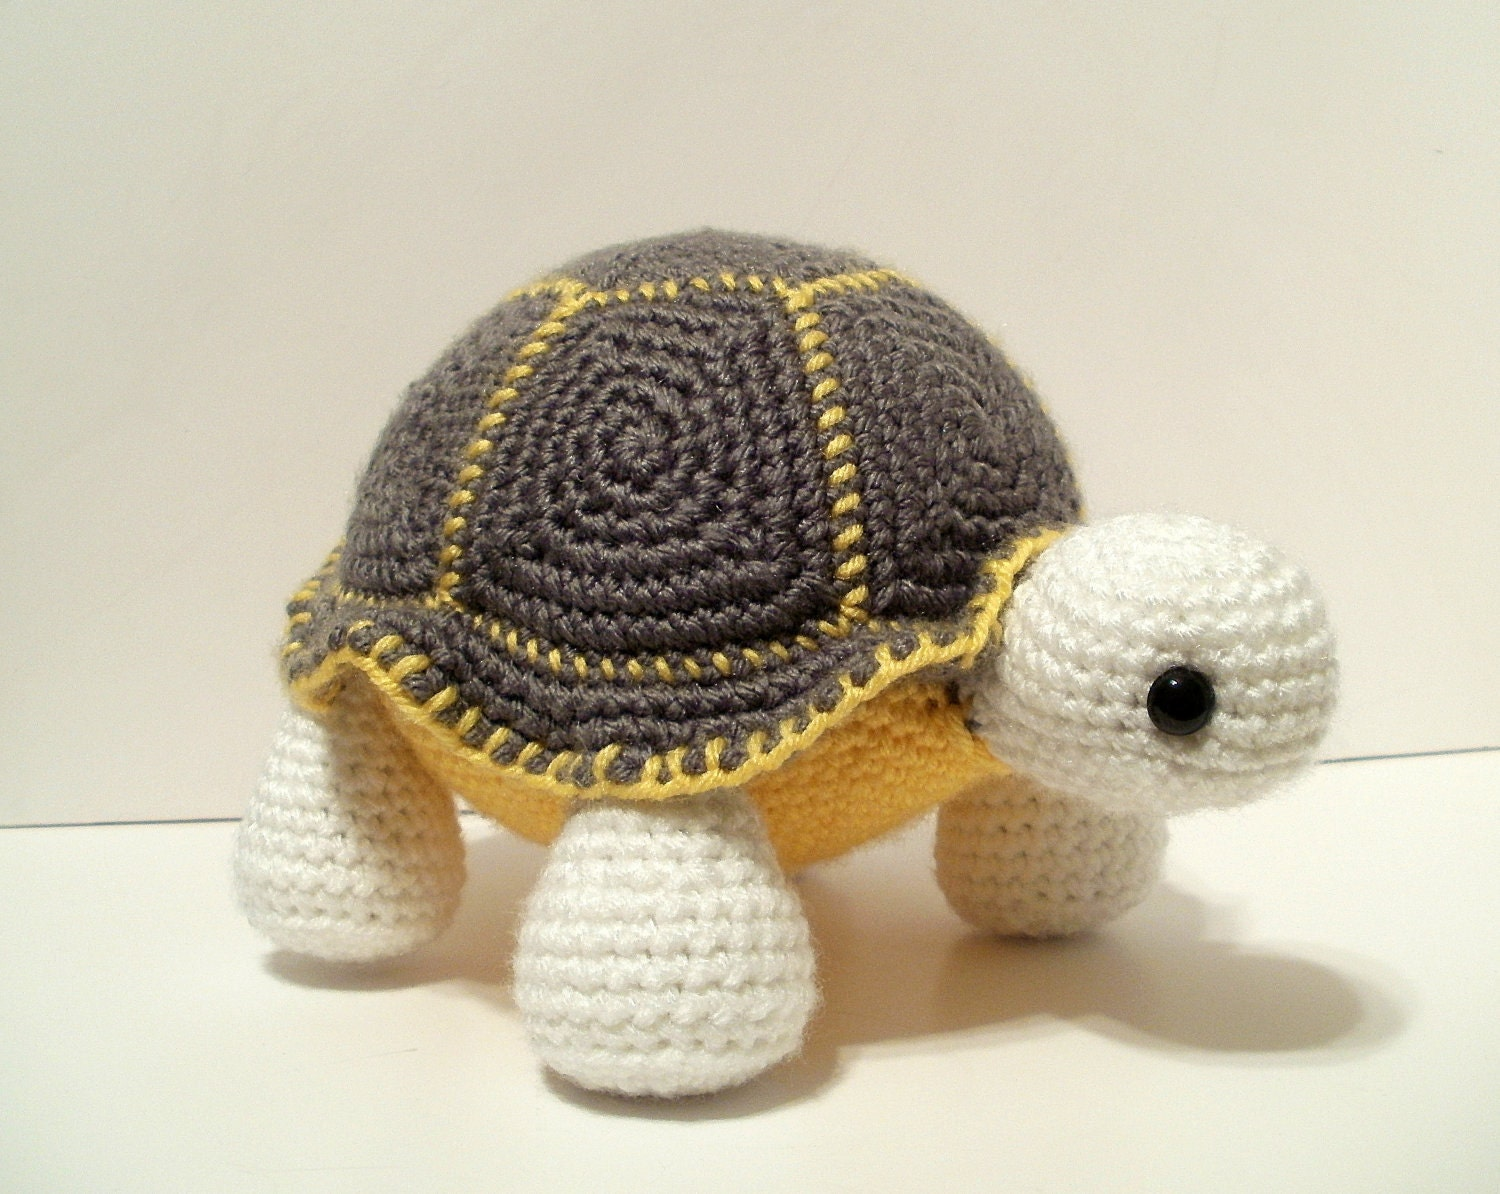 Crochet Turtle | Crochet Toys/Food | Pinterest